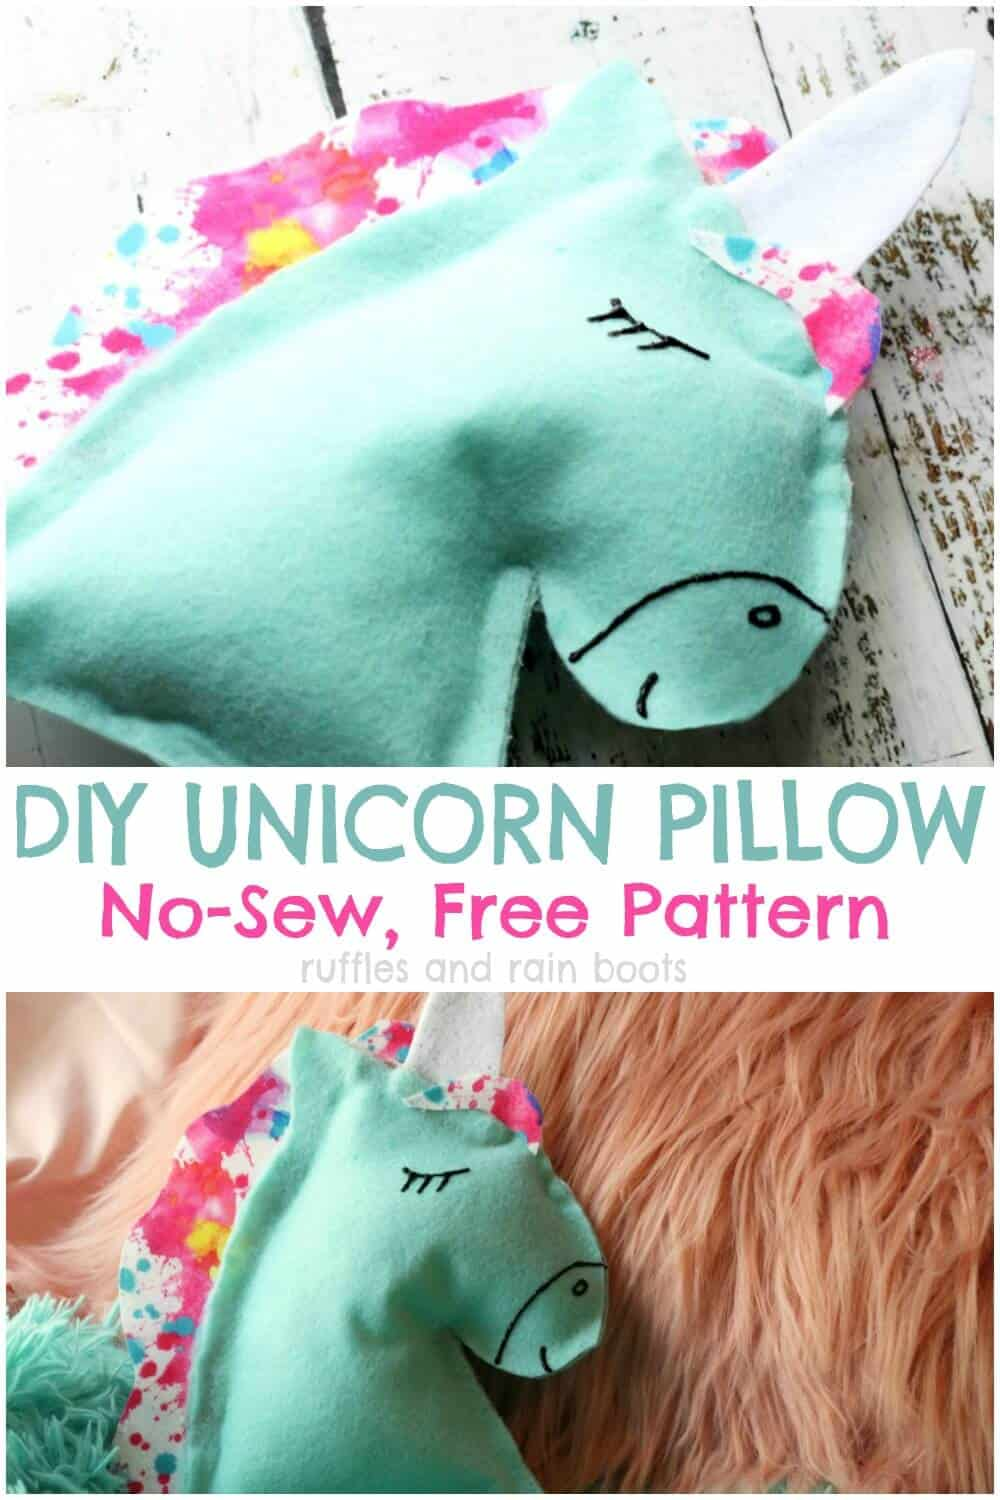 photo collage of unicorn pillow on two difference surfaces with text DIY unicorn pillow no sew, free pattern